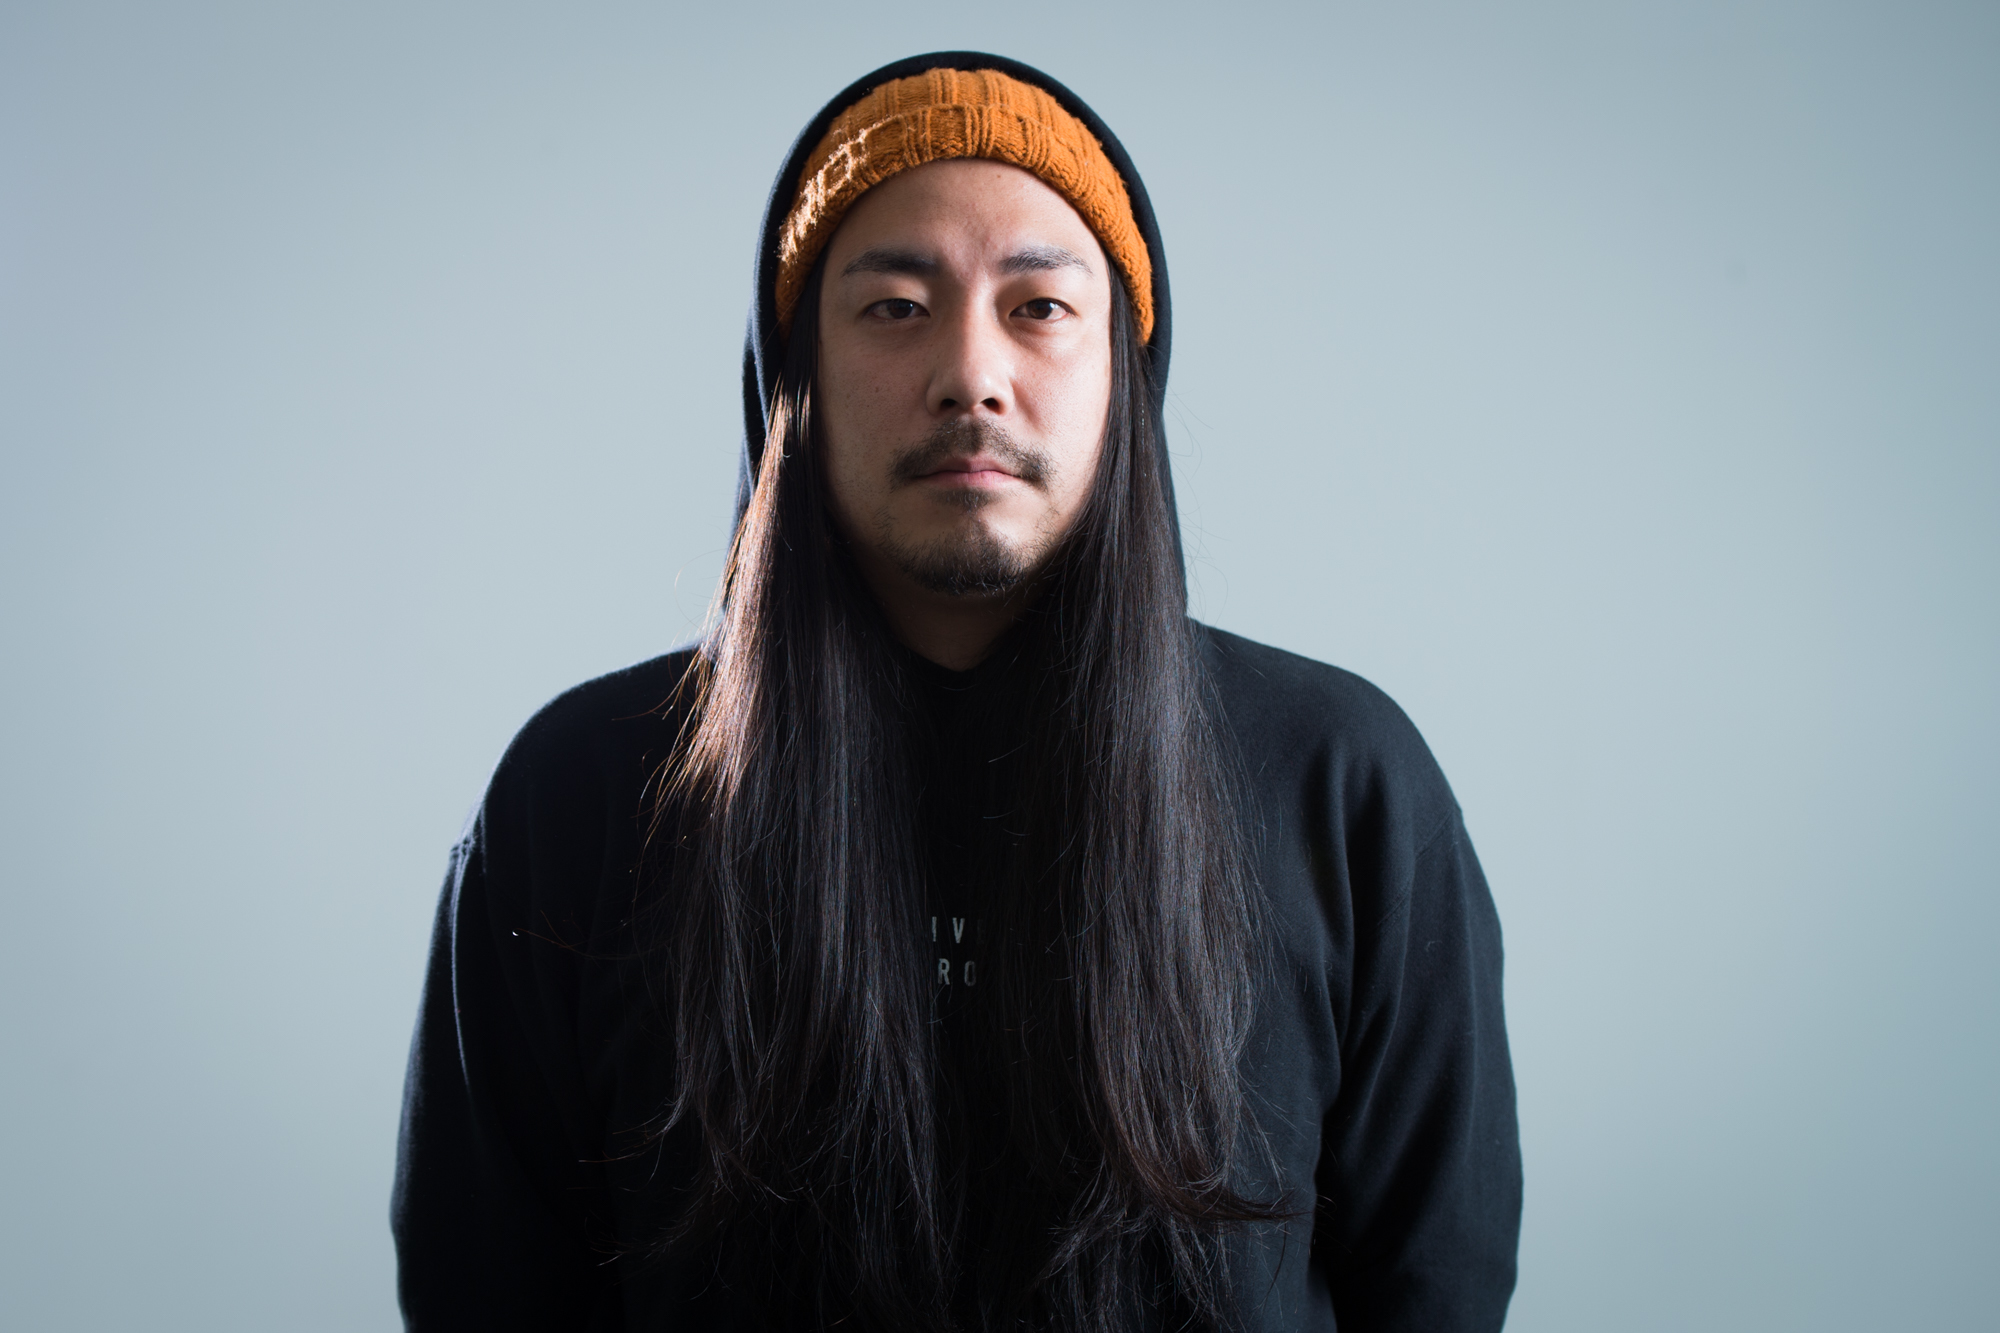 waterweed / Tomohiro Ohga